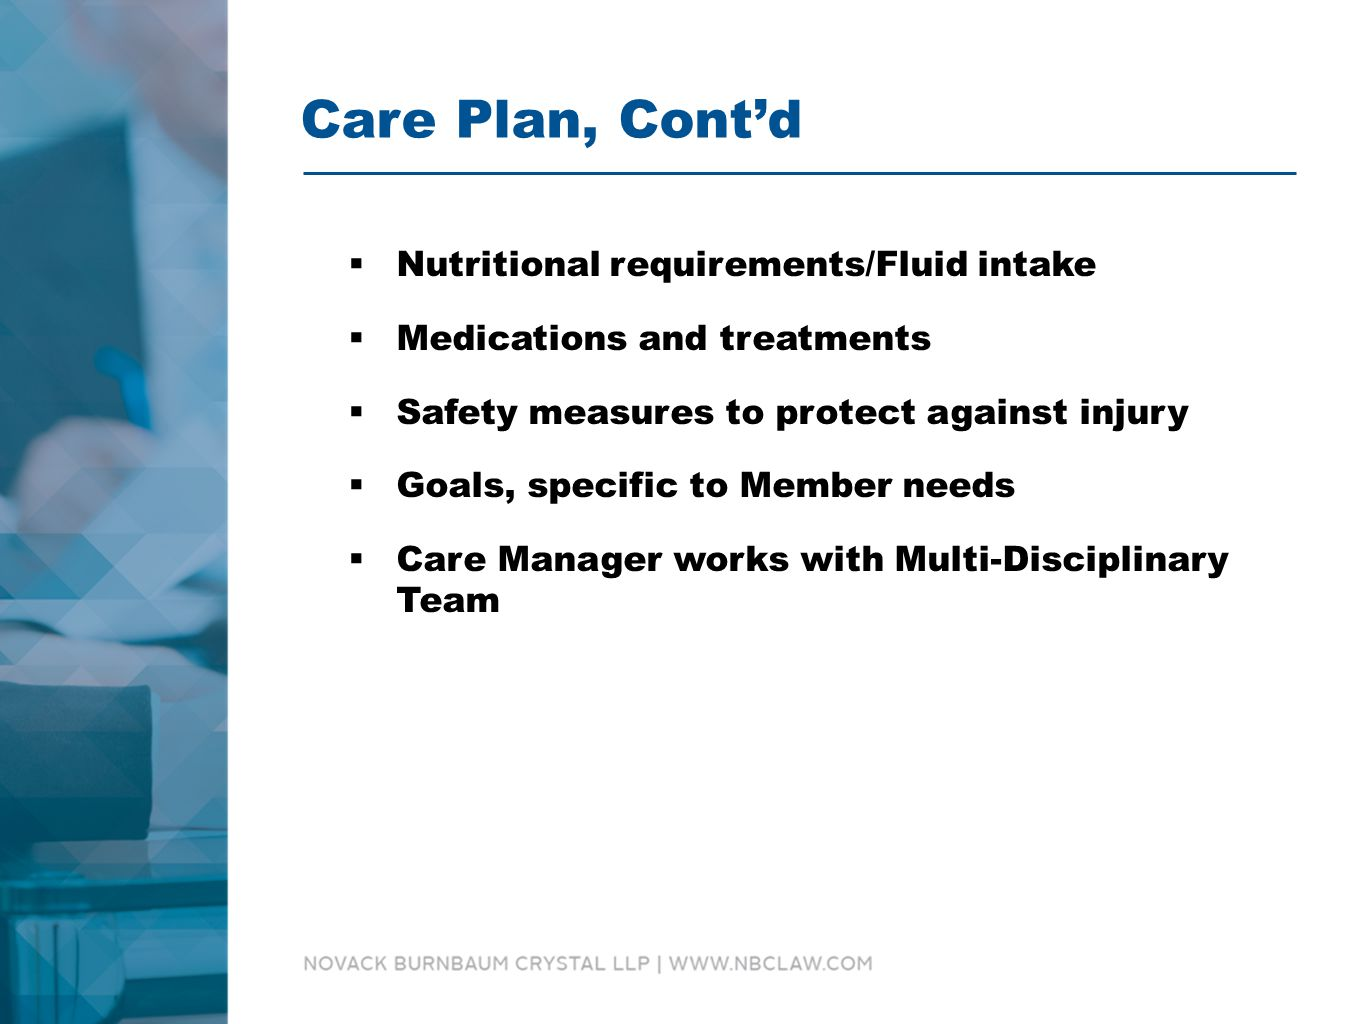 Care Plan, Cont'd  Nutritional requirements/Fluid intake  Medications and treatments  Safety measures to protect against injury  Goals, specific to Member needs  Care Manager works with Multi-Disciplinary Team